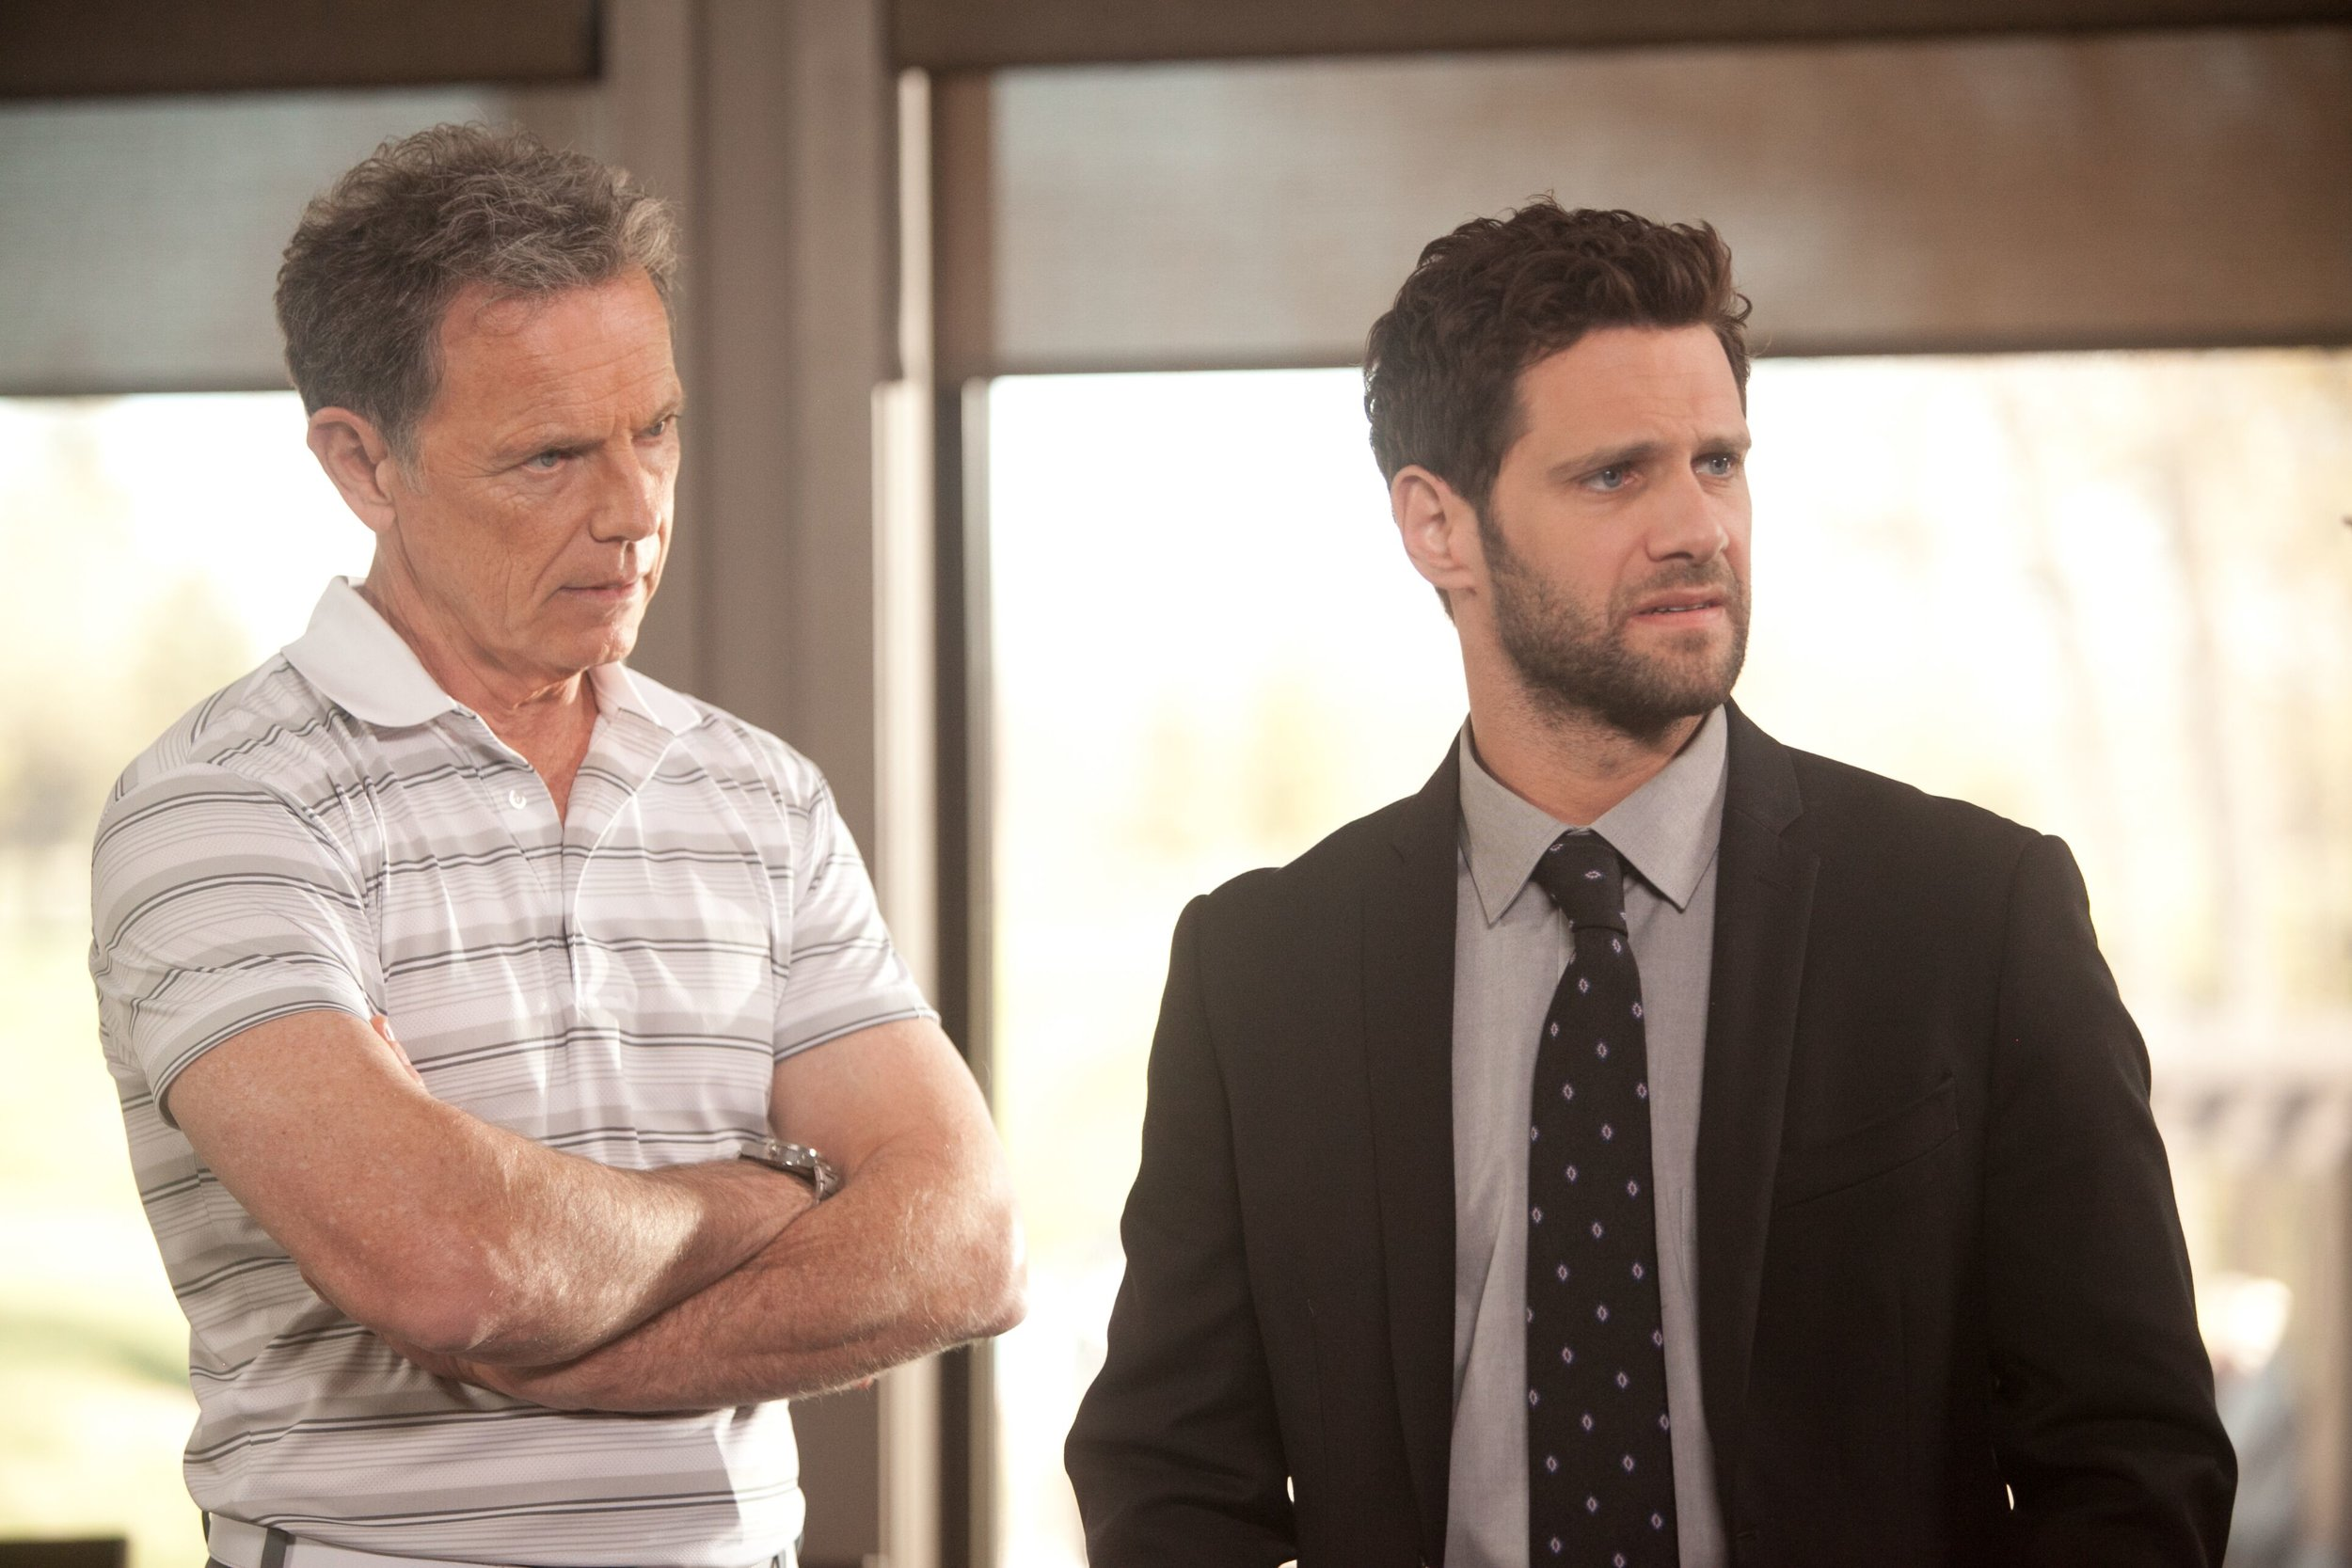 Bruce Greenwood plays Jeff, a golf bum guiding Ken (Justin Bartha) through some unpleasant family truths.